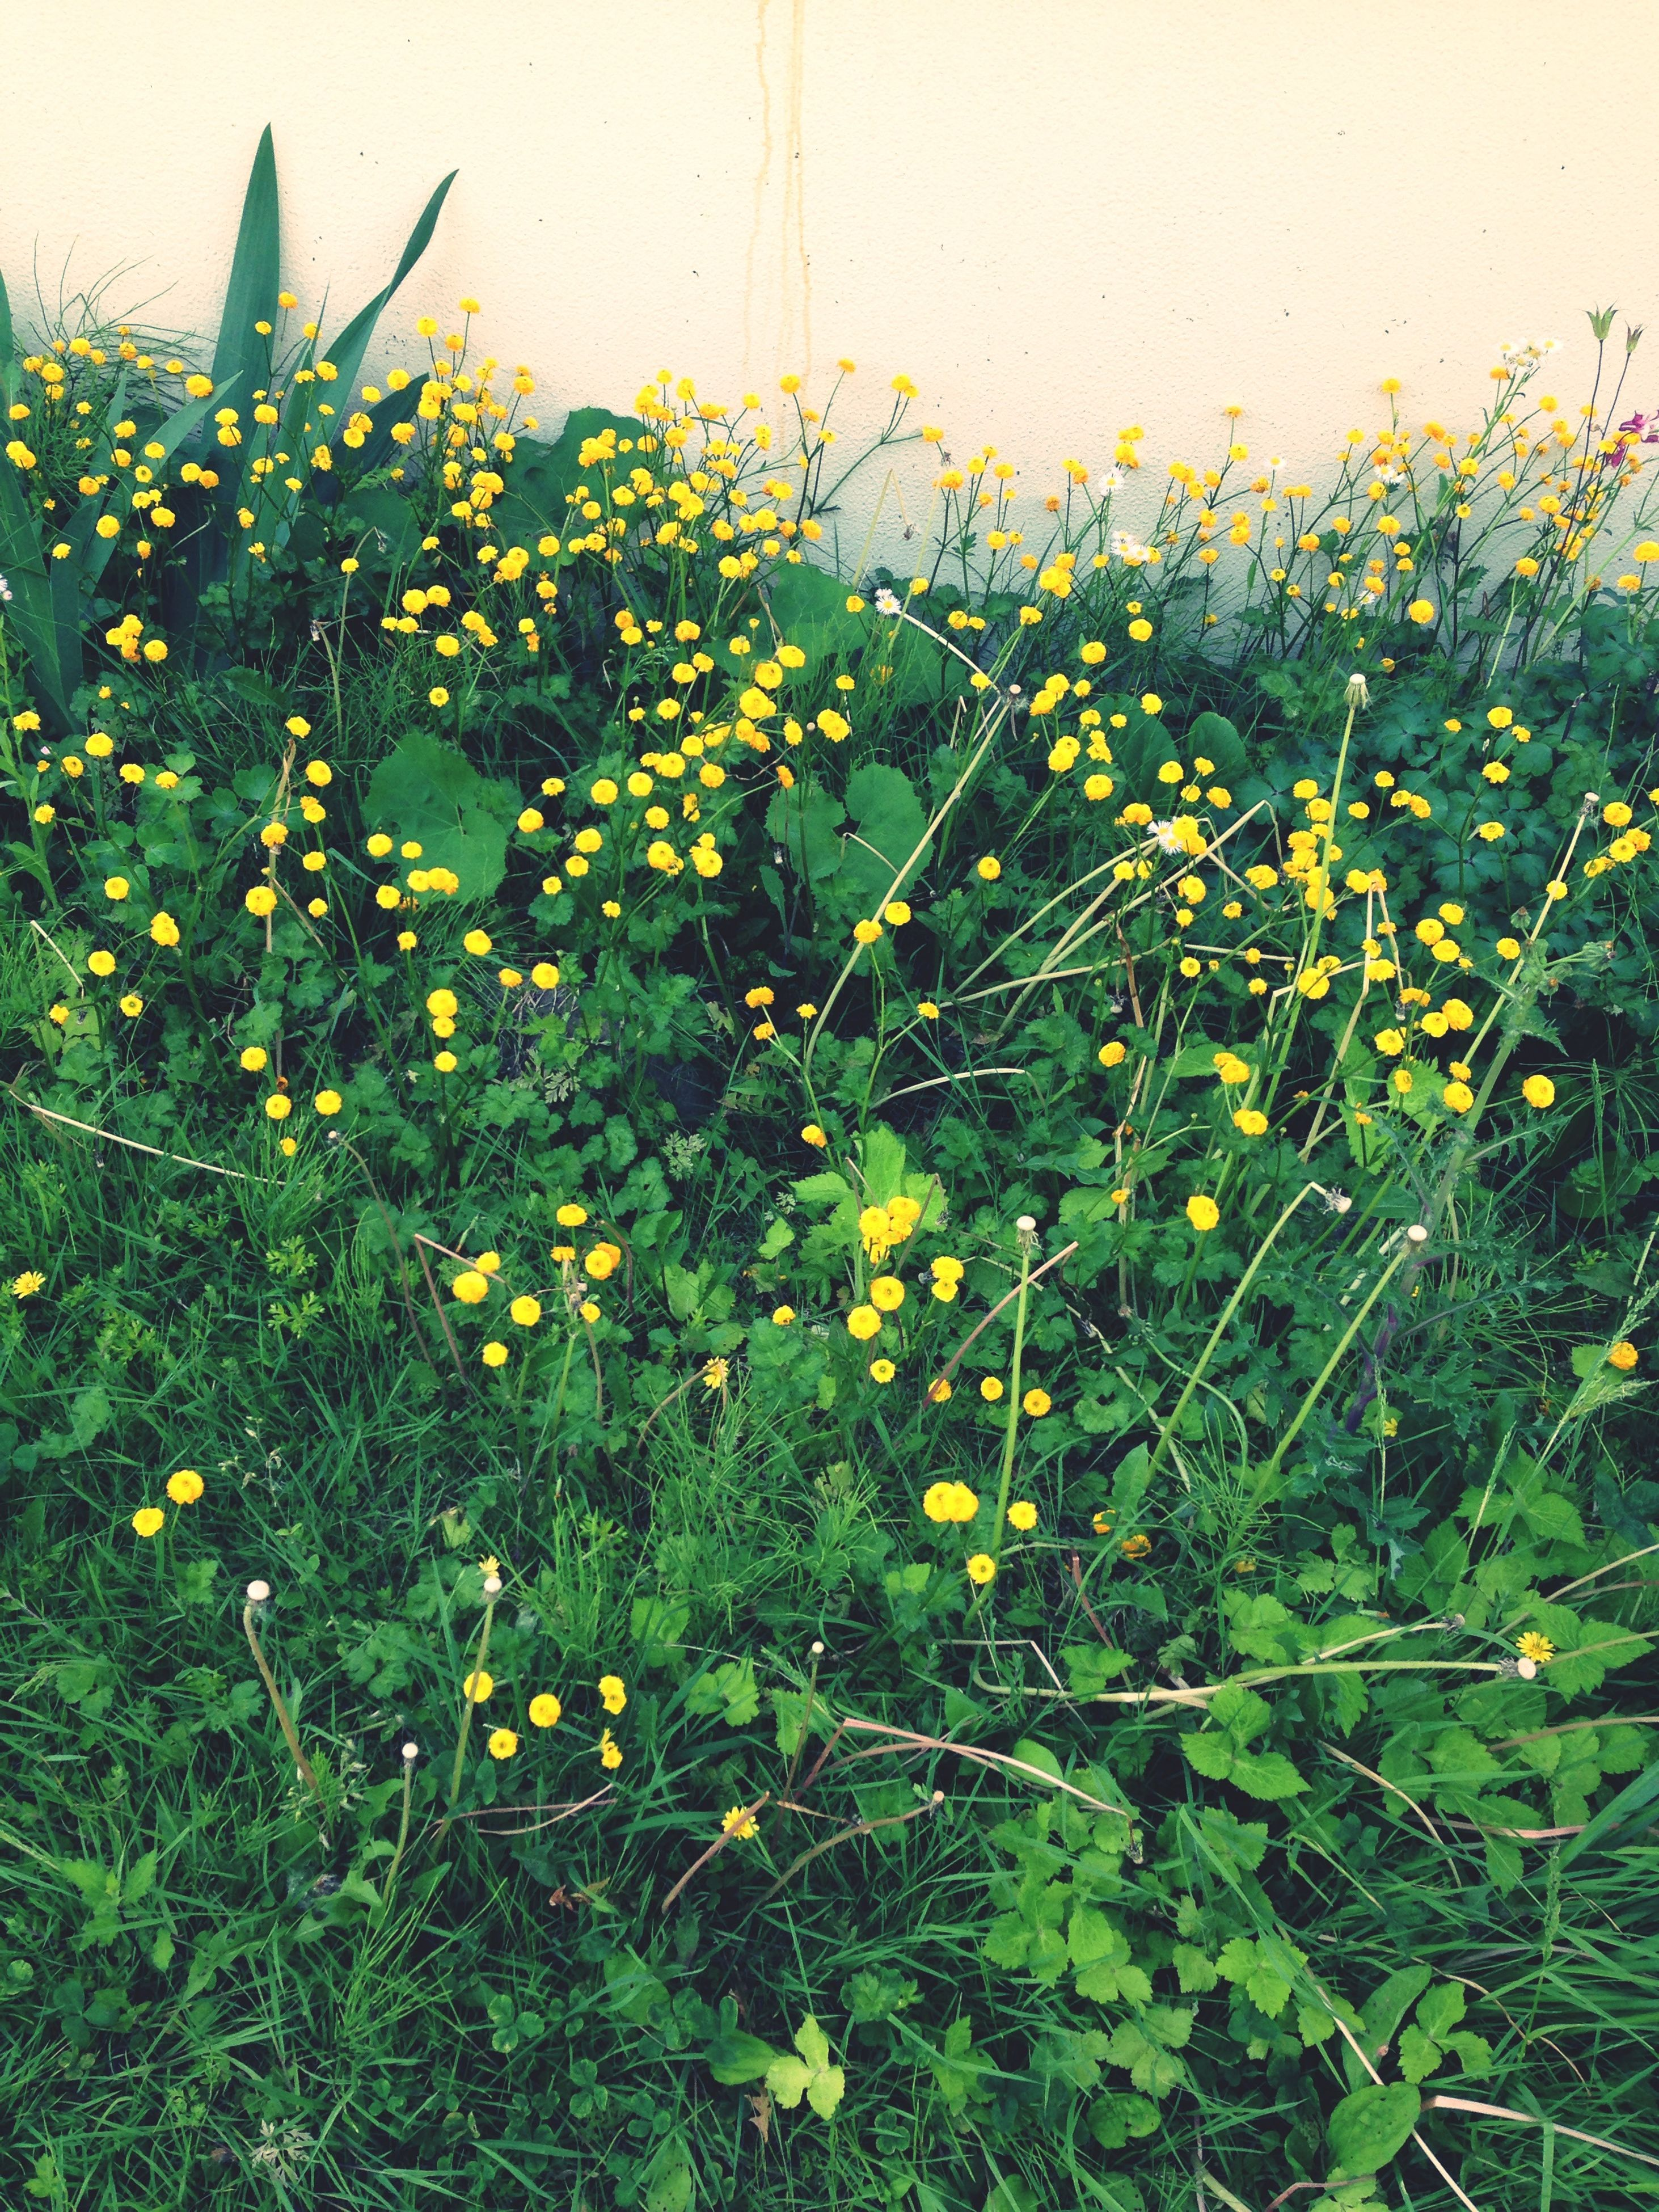 flower, freshness, growth, fragility, yellow, plant, beauty in nature, nature, blooming, petal, field, flower head, stem, in bloom, green color, day, blossom, wildflower, outdoors, close-up